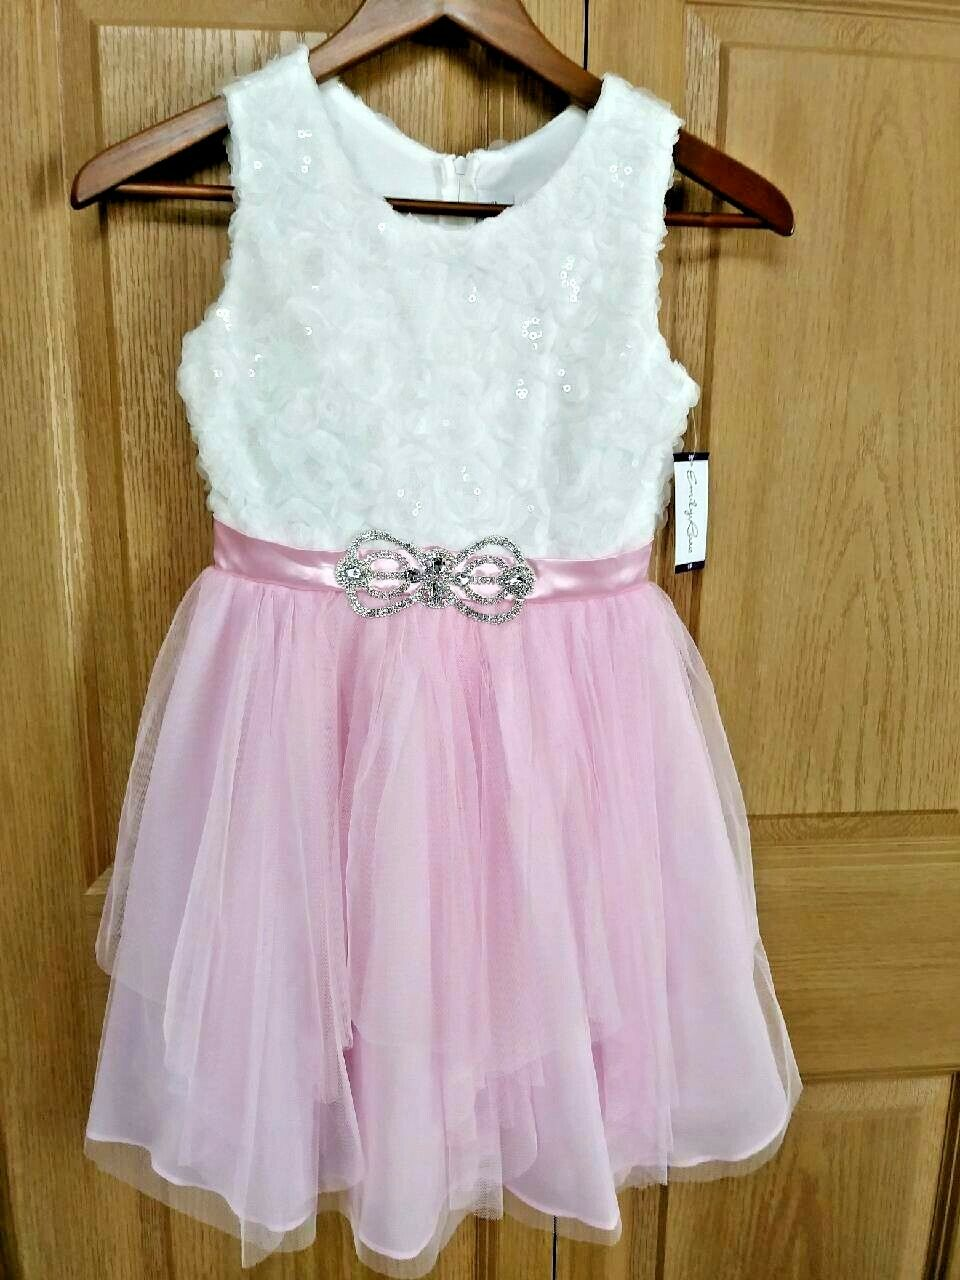 2 Girls Formal Wedding Bridesmaid Party Dresses - New with Tags! Size 10